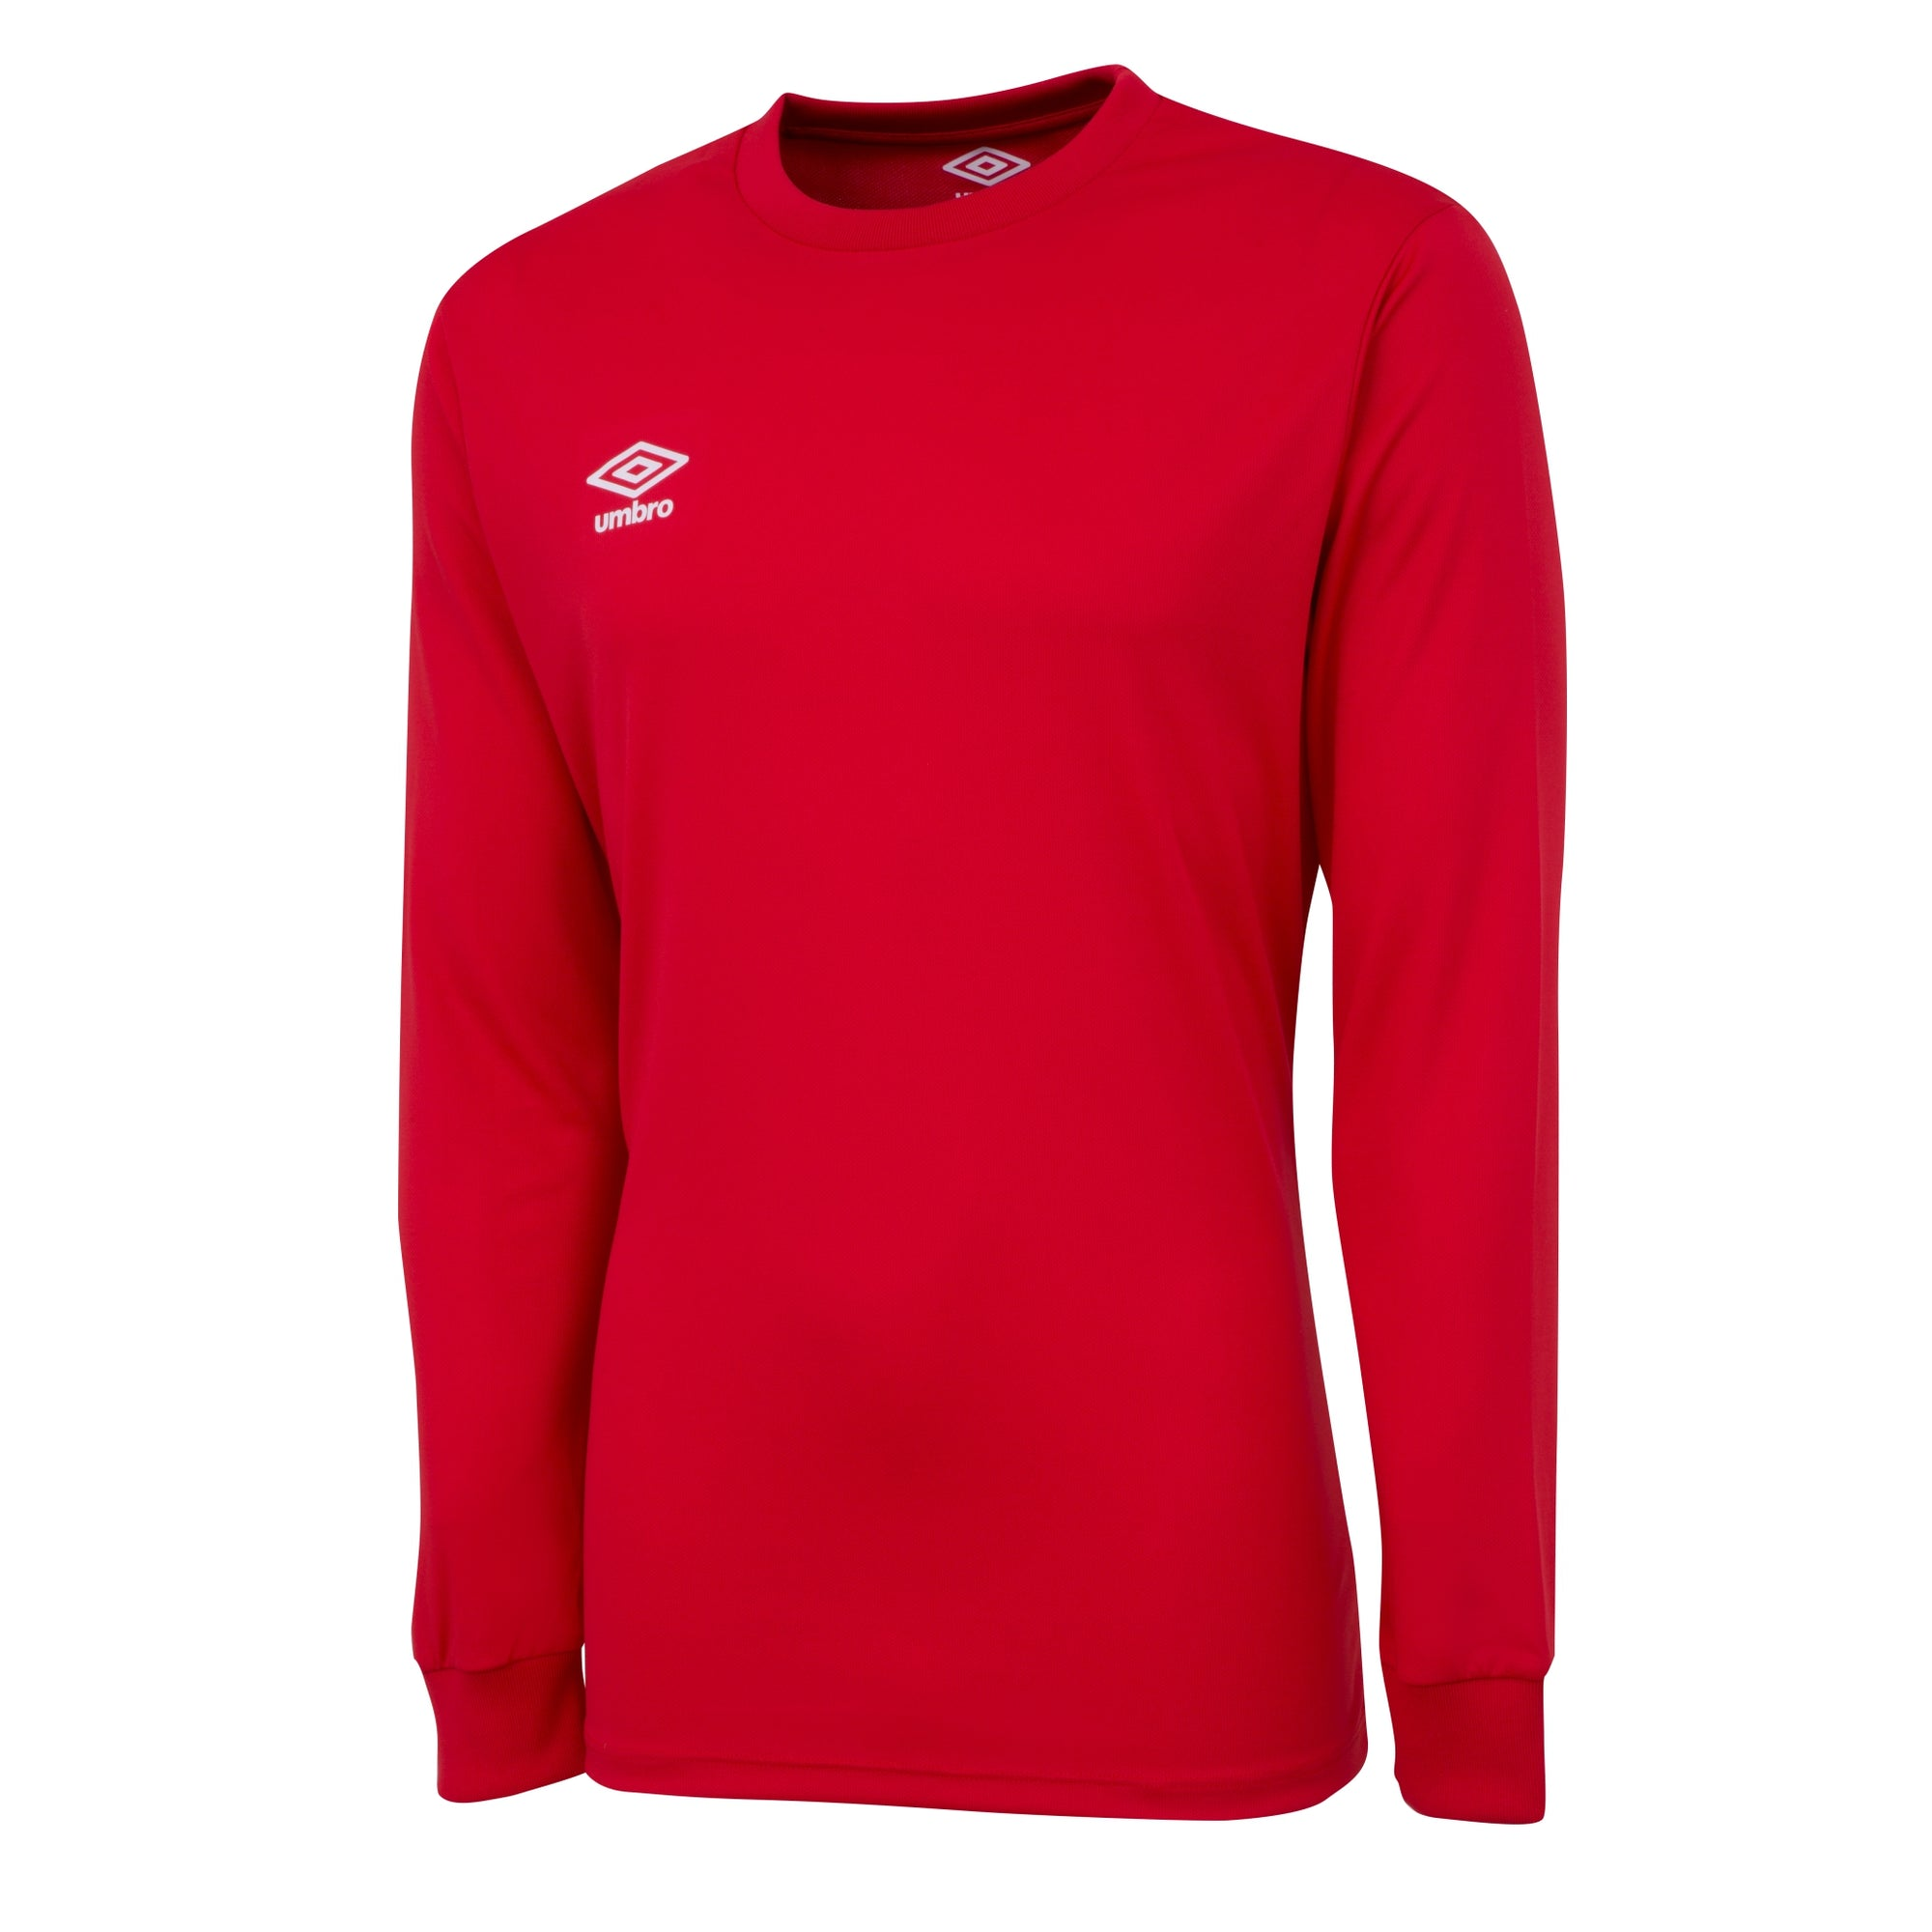 Umbro long sleeve club jersey in vermillion (red) with white printed Umbro logo